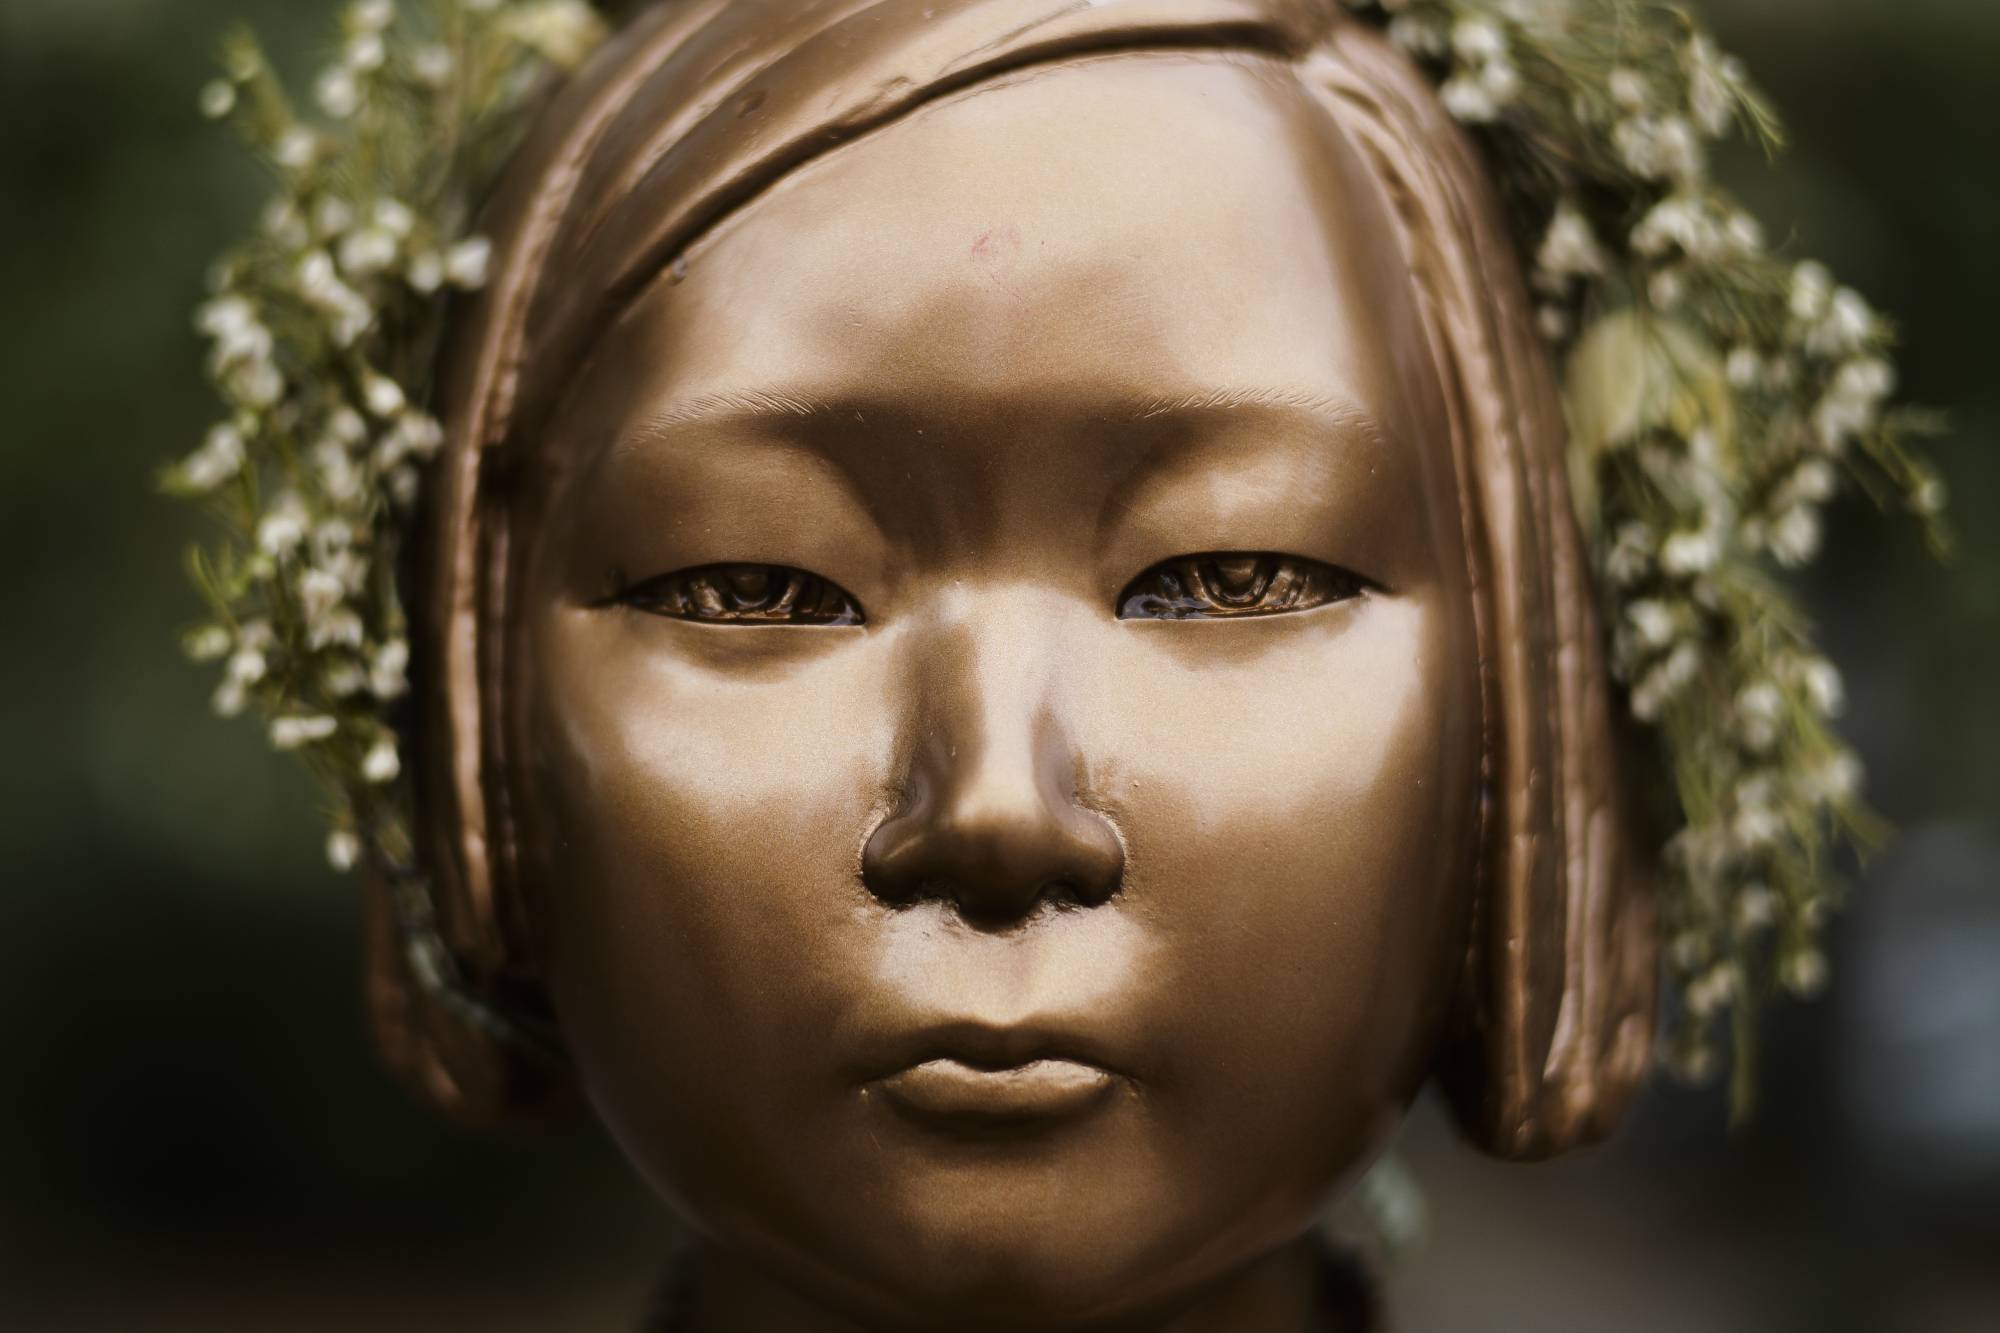 A statue commemorating so-called 'comfort women' is displayed in a residential area in central Berlin. | AP